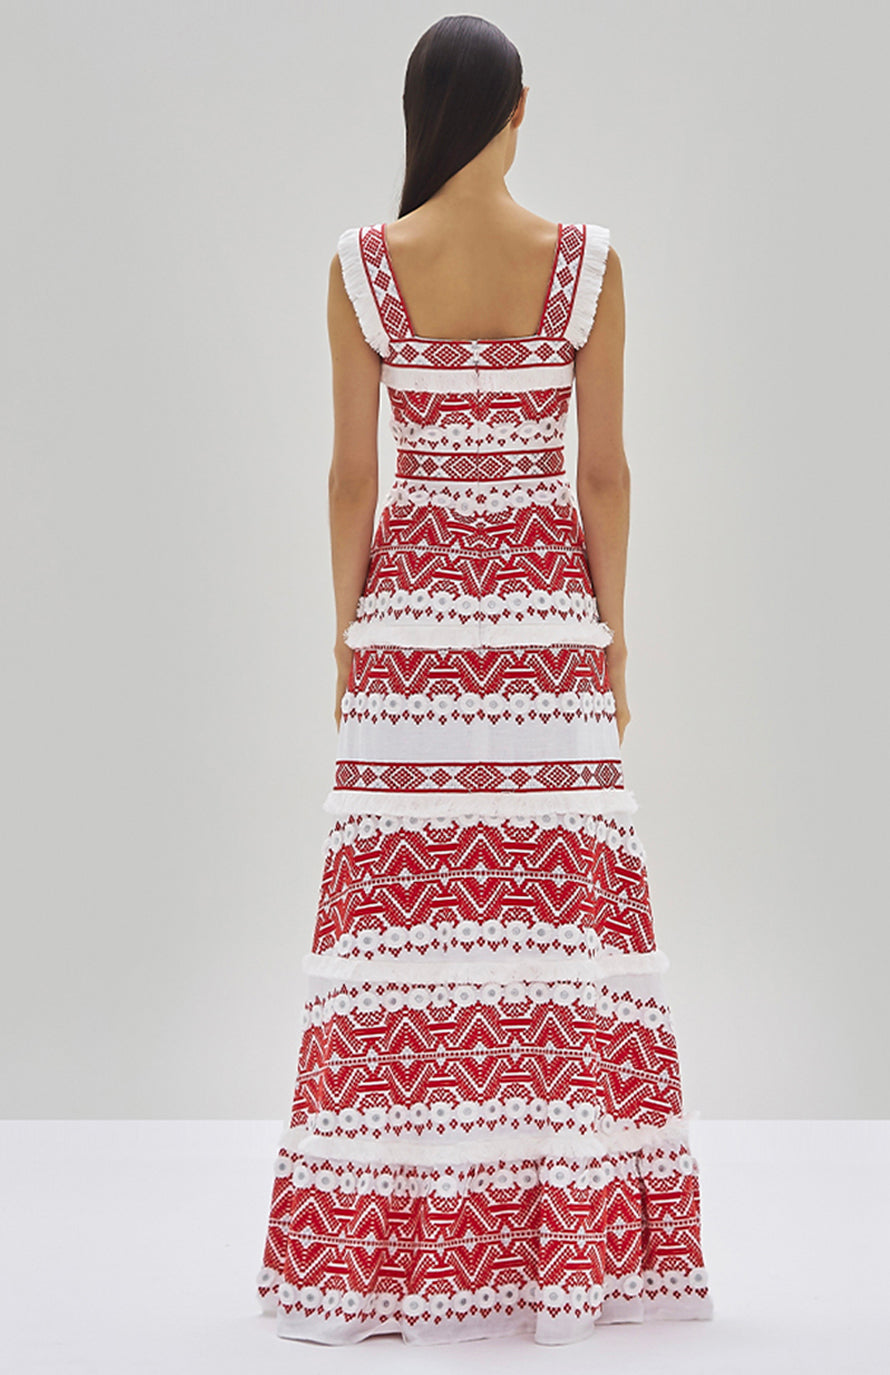 Alexis Leonora Dress Rich Embroidery Red - Rear View